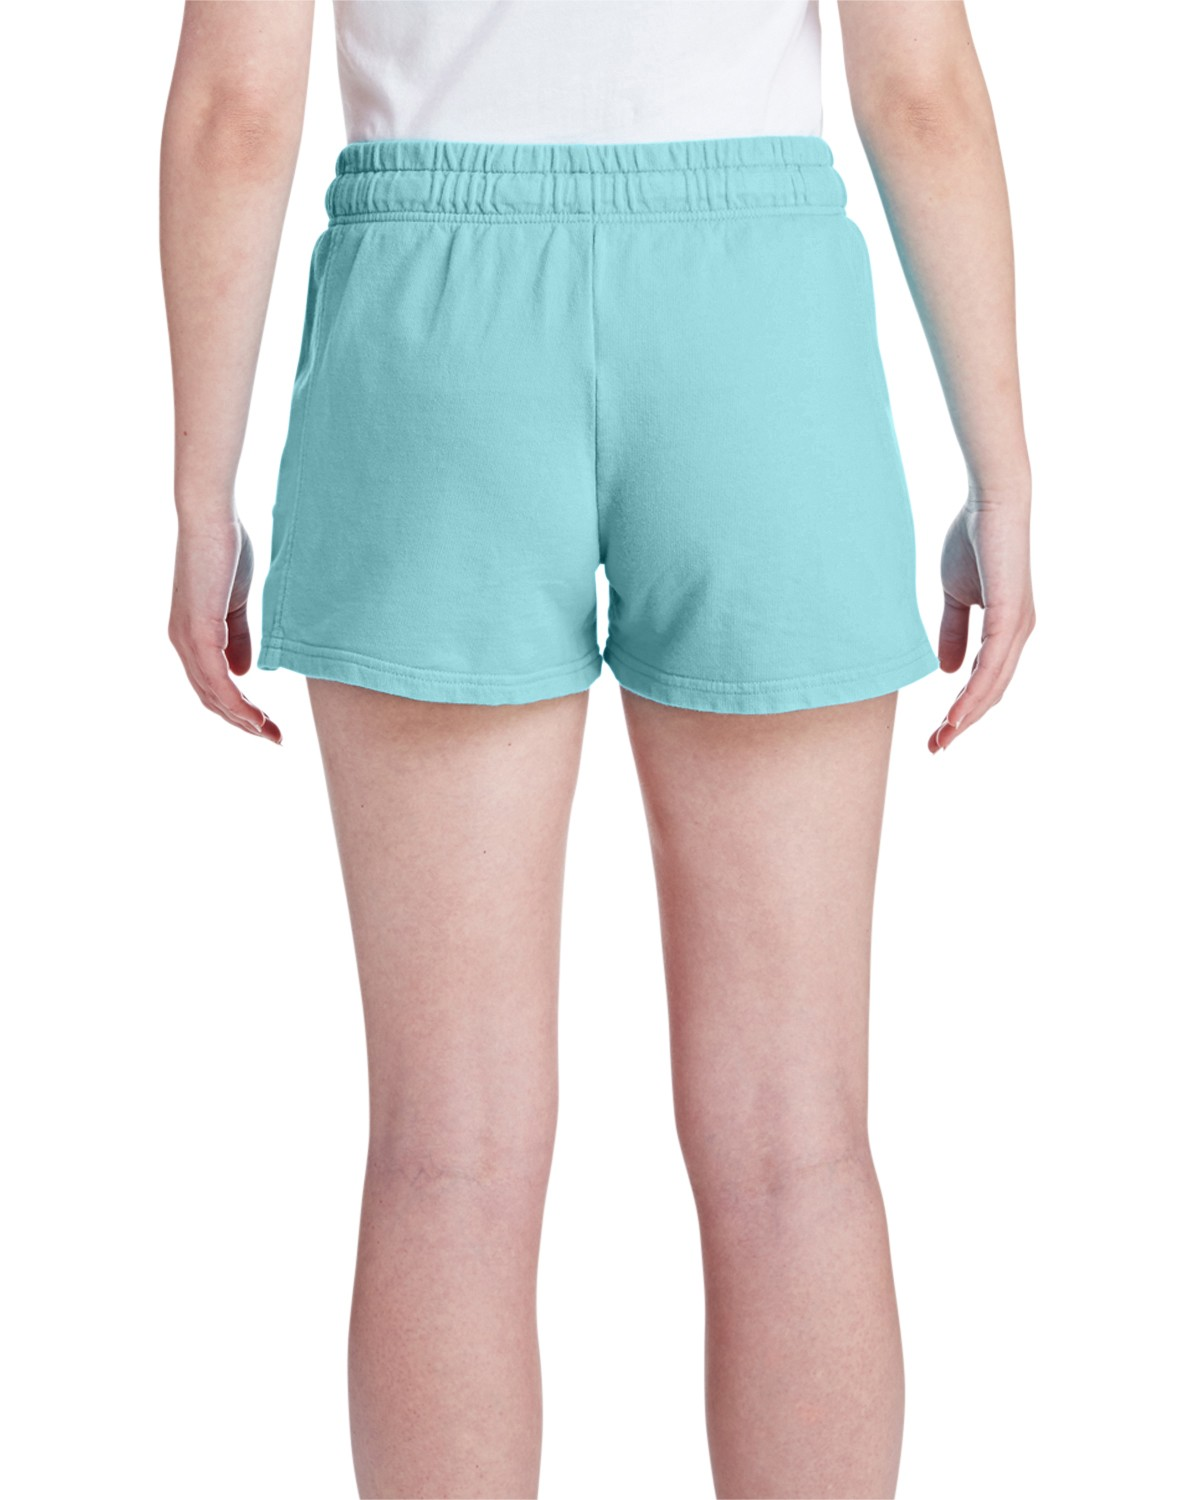 1537L Comfort Colors CHALKY MINT